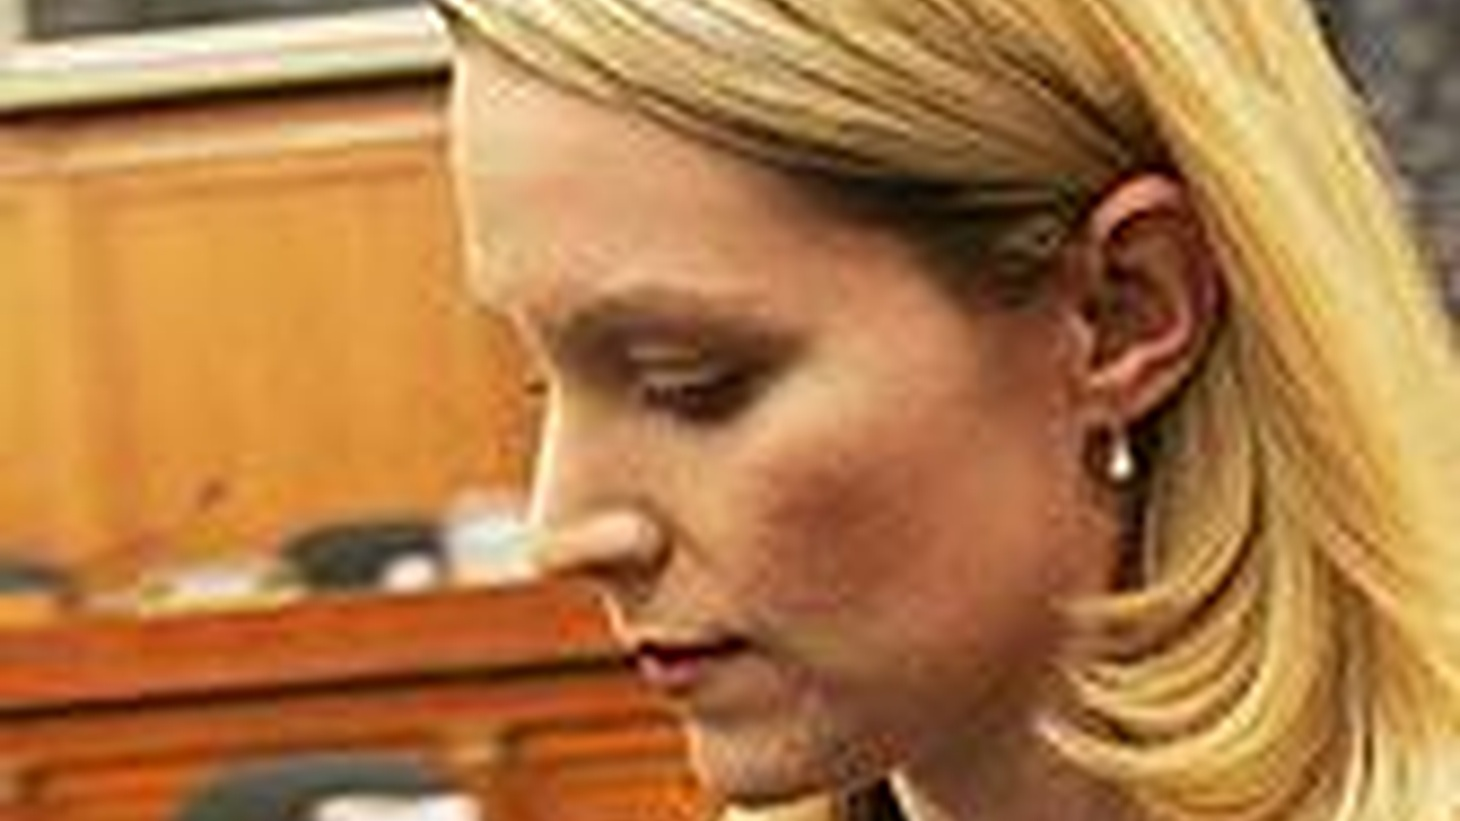 Monica Goodling, a former top aide to Attorney General Alberto Gonzales, admits she let politics play a role in hiring employees and denies ever talking to Karl Rove about the firing of US Attorneys. We'll hear about her much-awaited testimony. Also, a rundown on the Congressional oversight Democrats promised when they took over Capitol Hill.